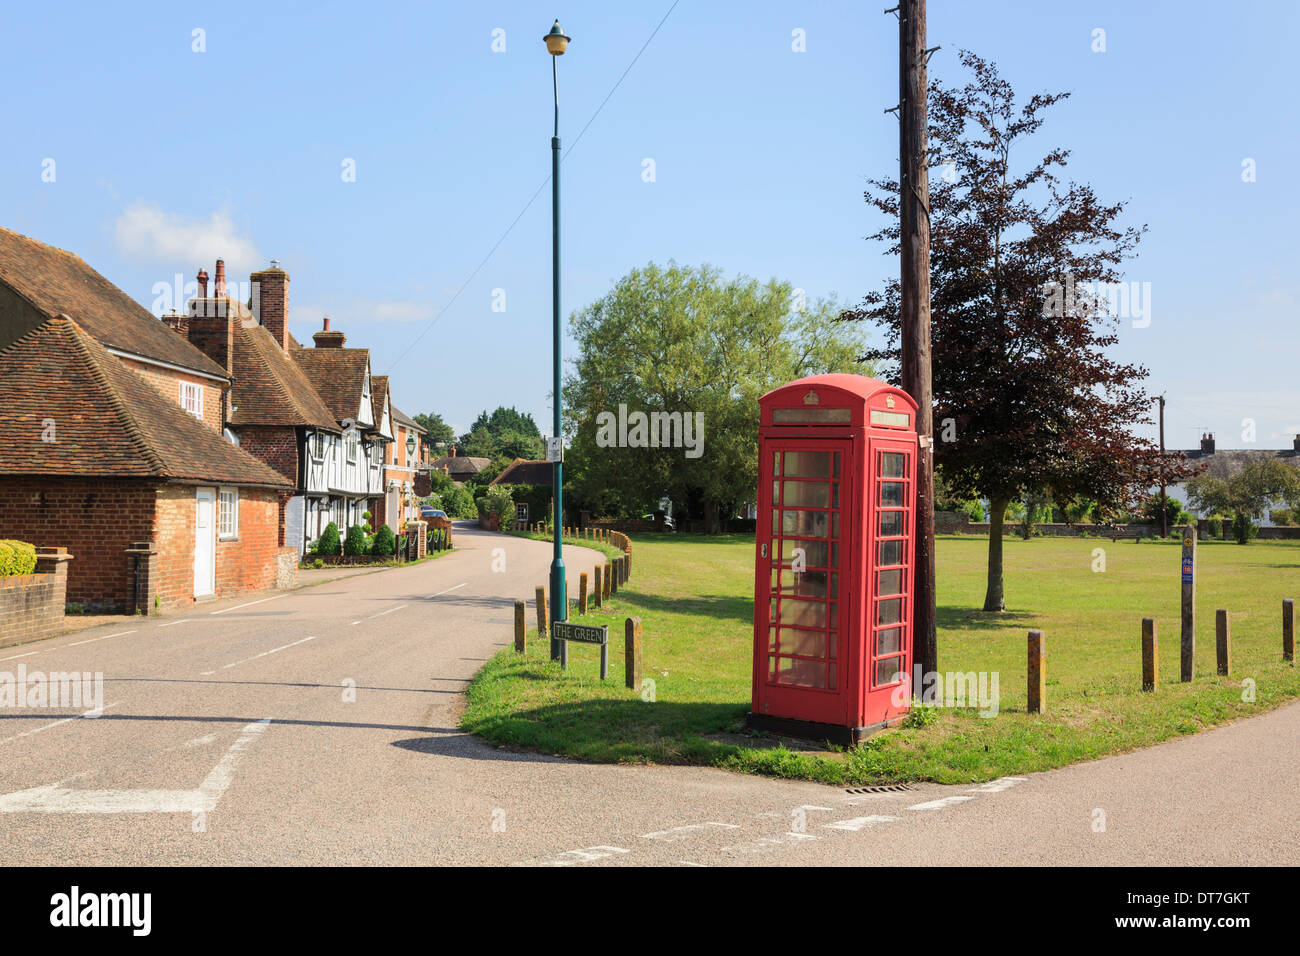 Traditional old red telephone box and telegraph pole on a village green in Stour Valley. Chartham, Kent, England, UK, Britain - Stock Image